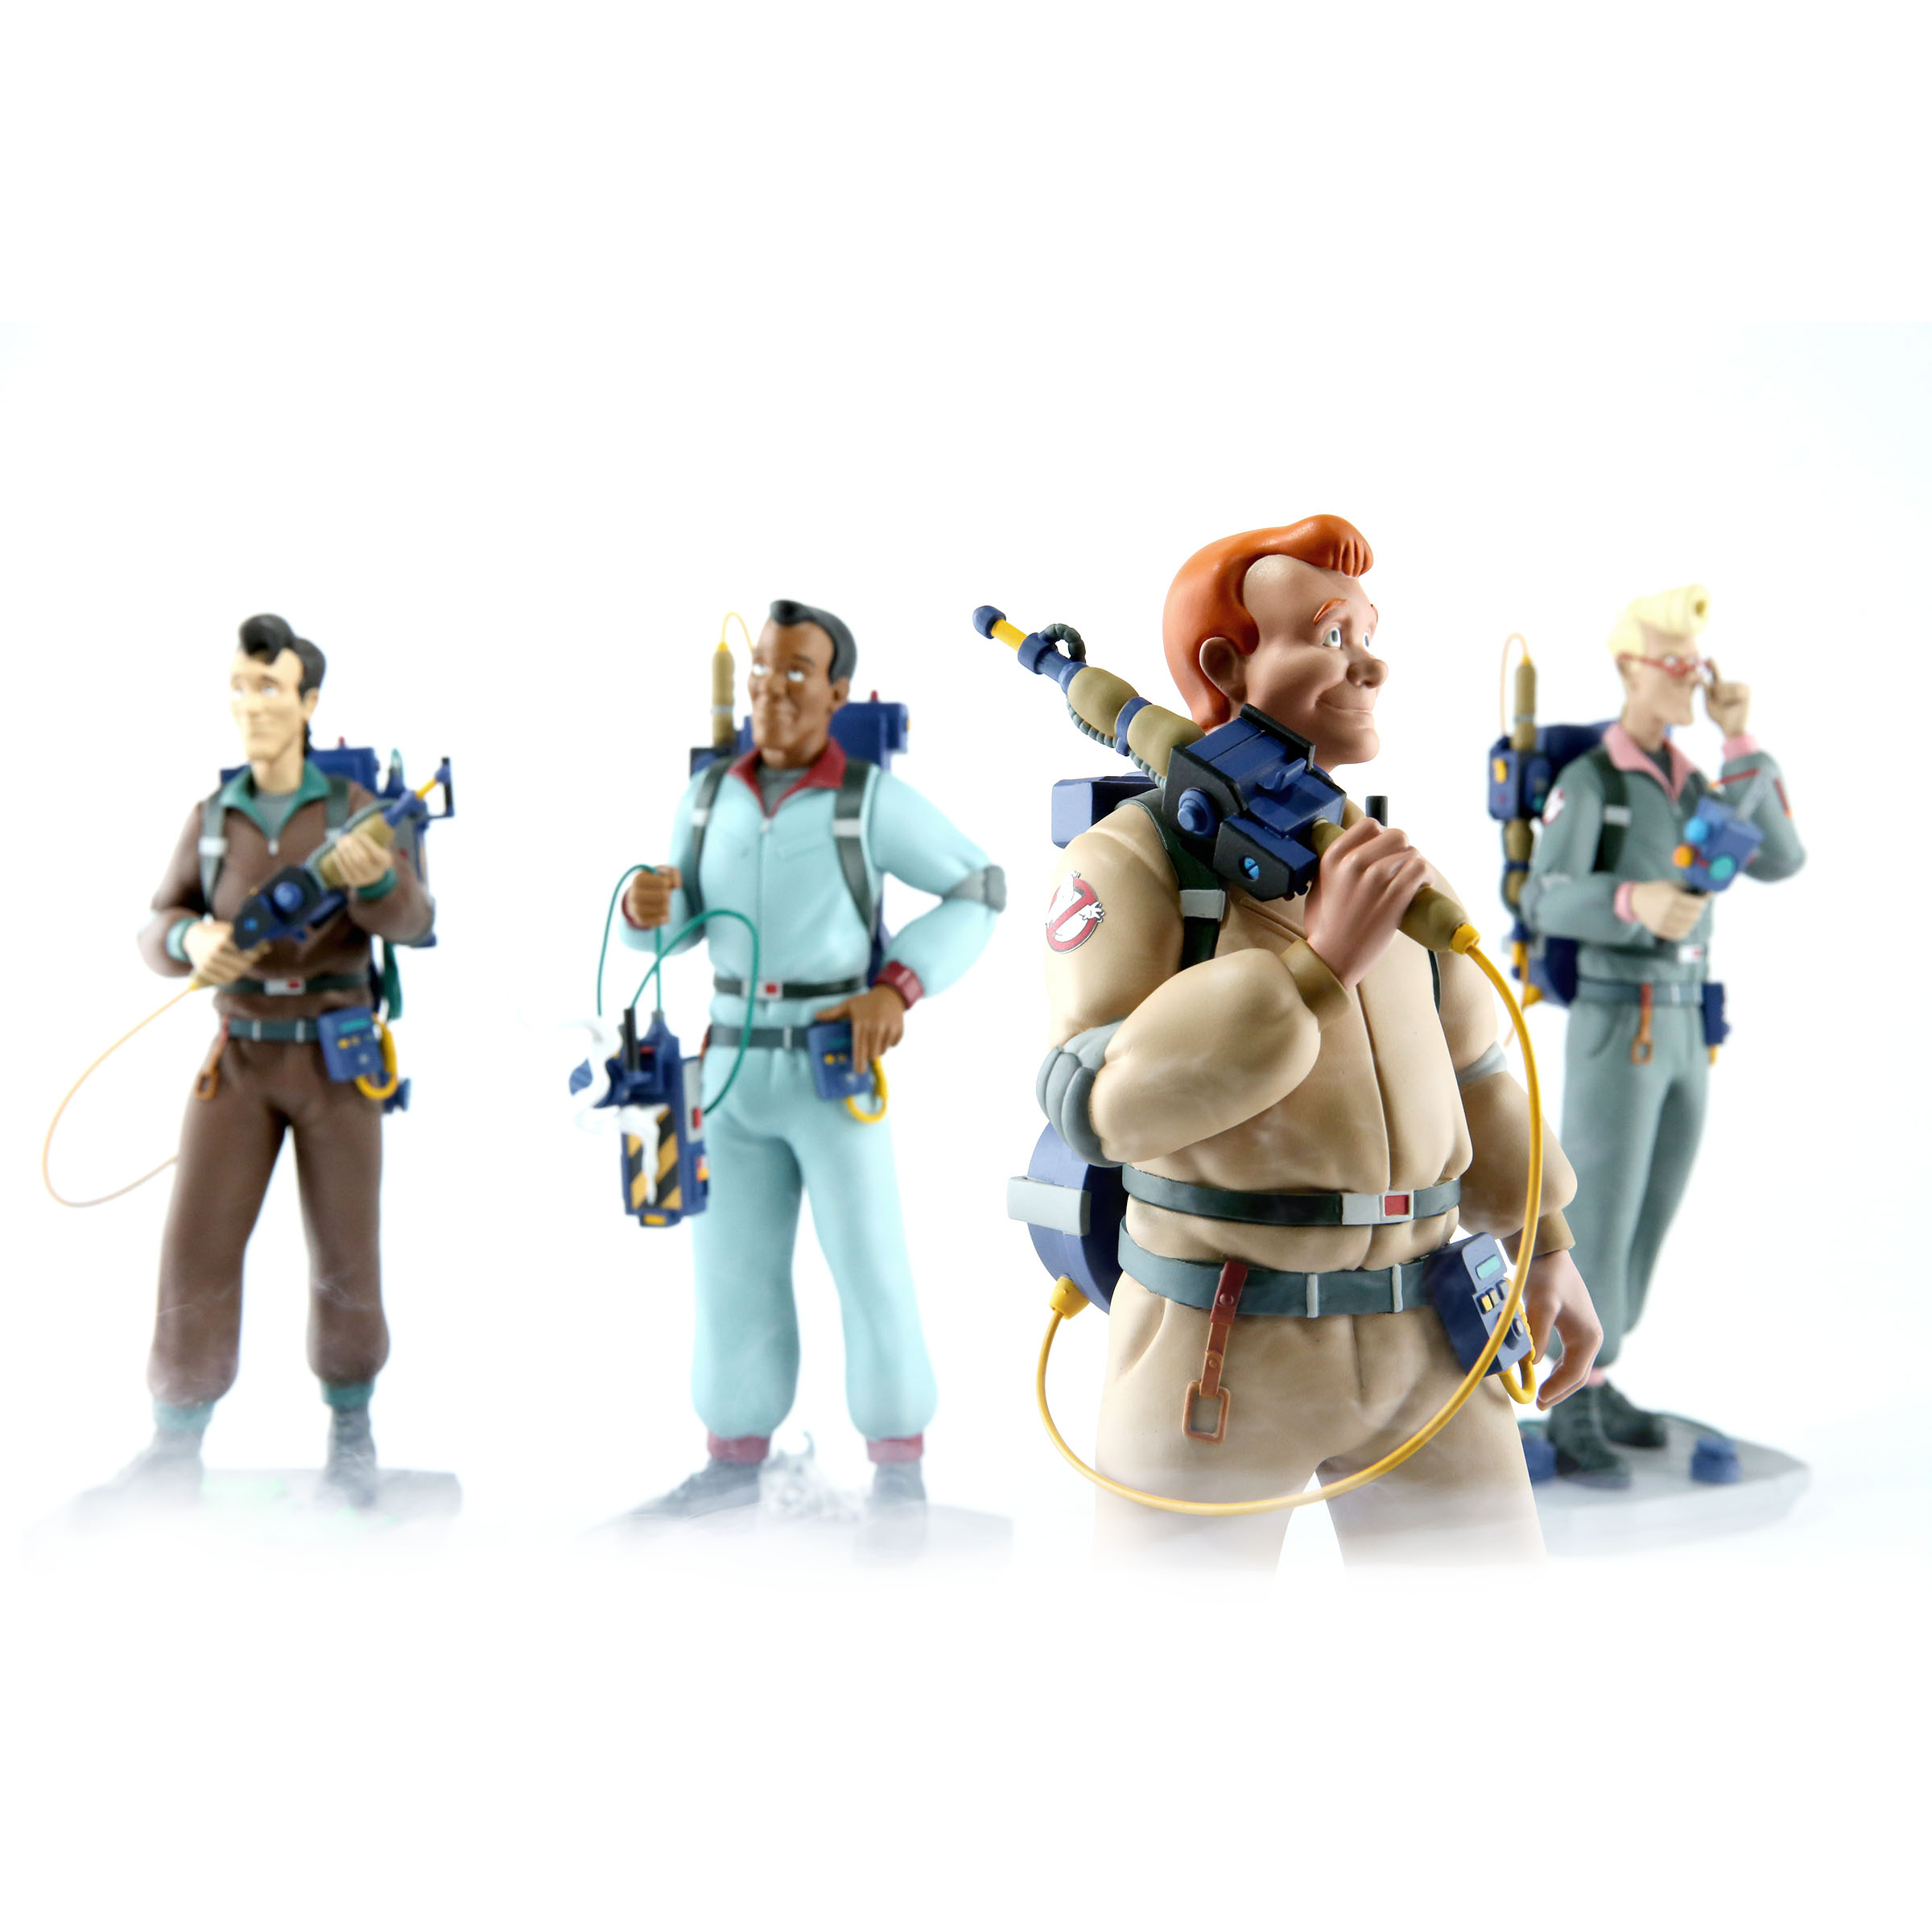 Link a The-Real-Ghostbusters-Statues-004